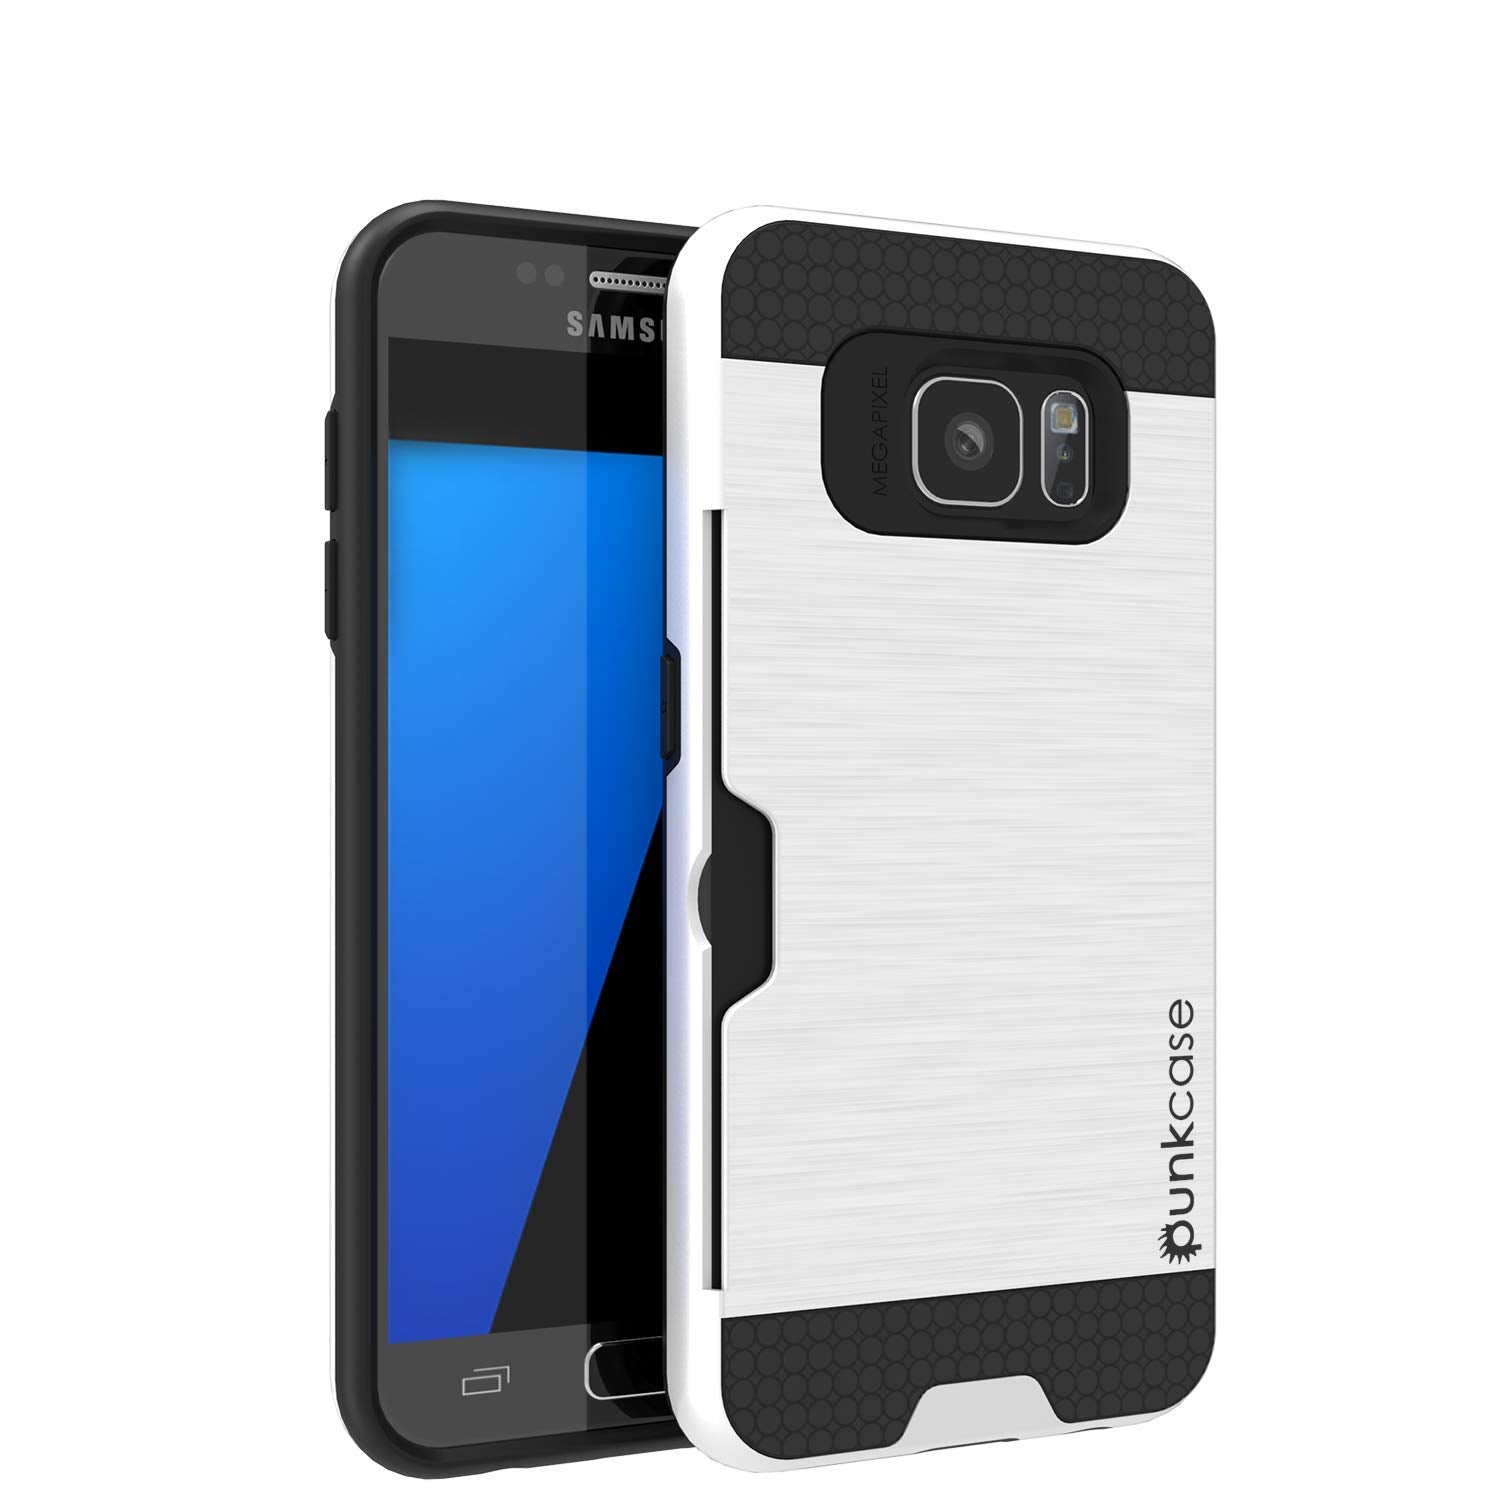 Galaxy S7+ Plus Dual-Layer Ultra Screen Protector Case W/ Card Slot [White]